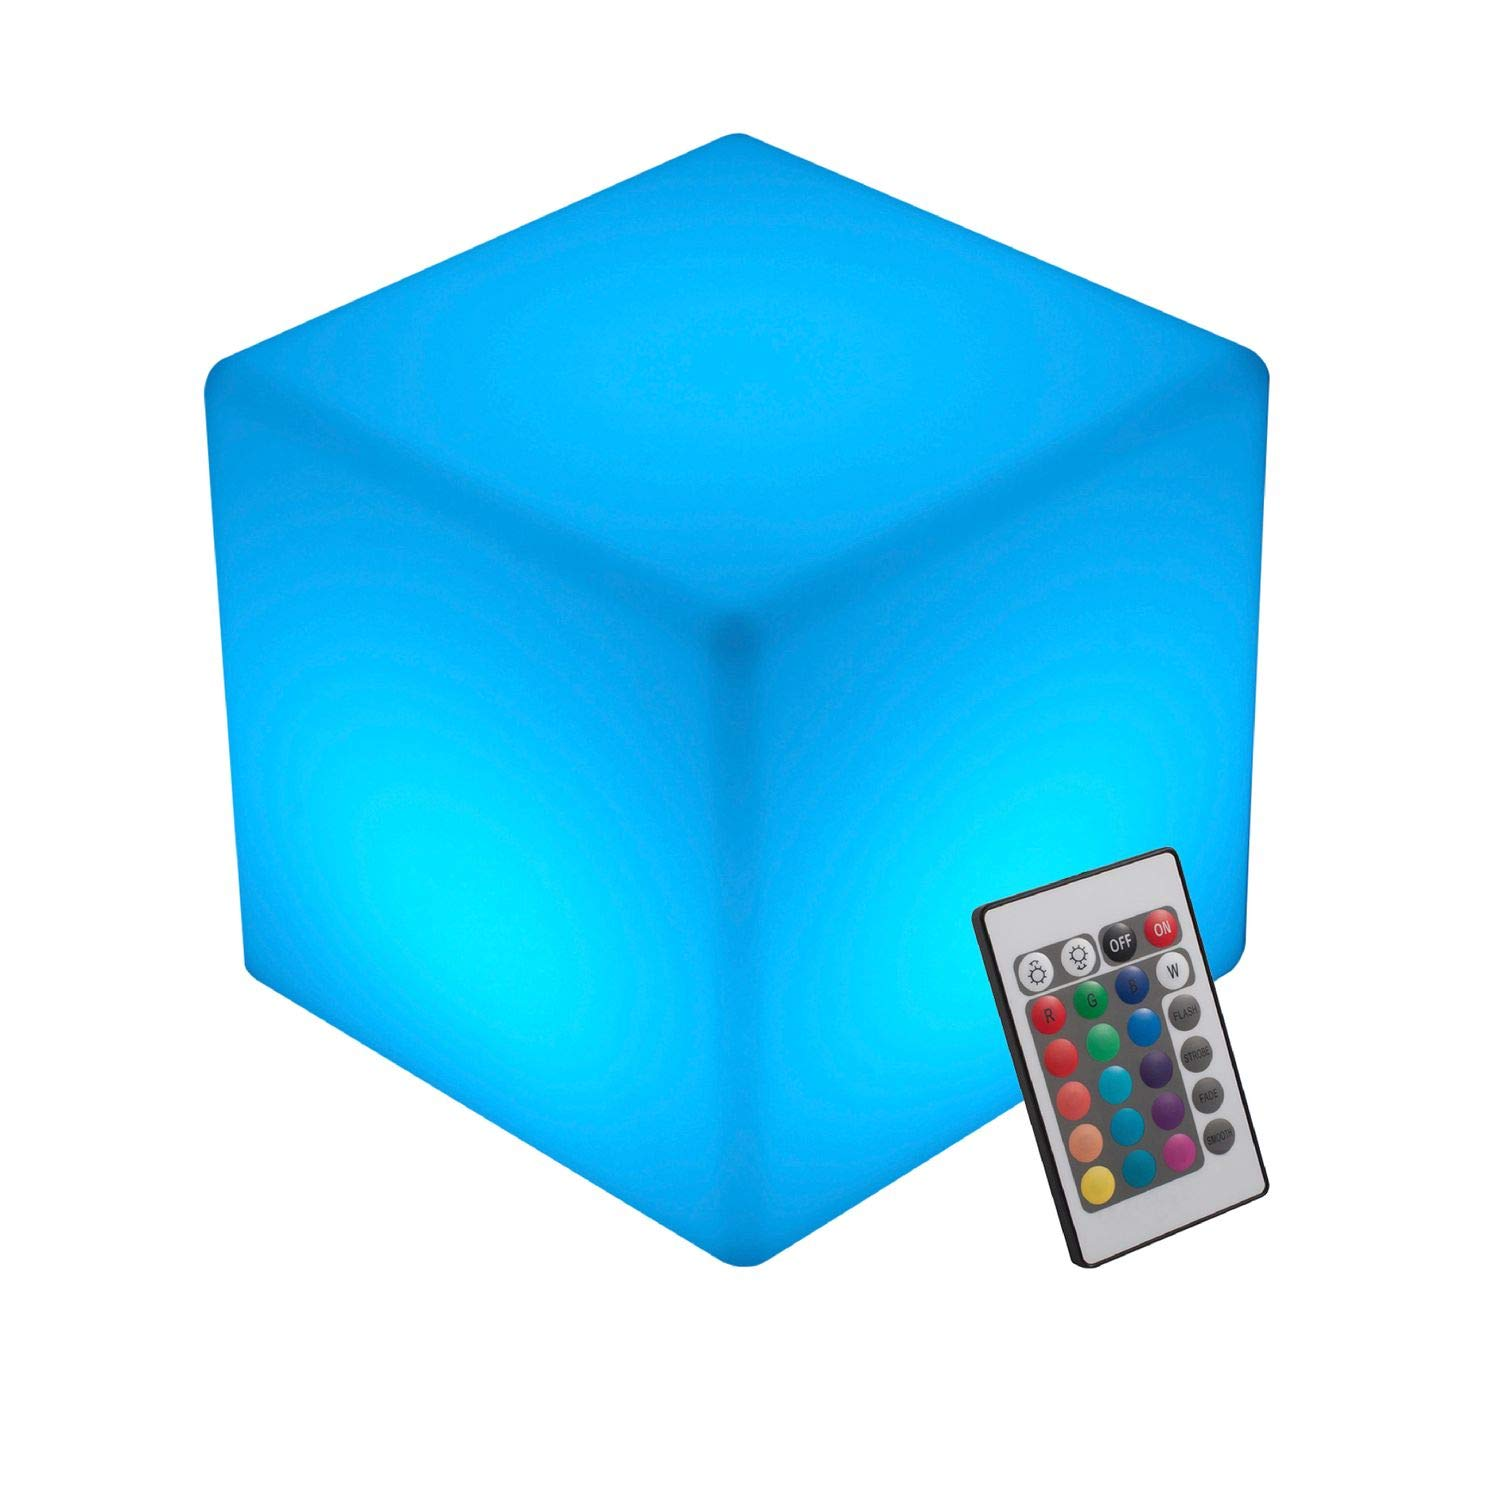 INNOKA 12-inch Large LED Cube Light, IP65 Waterproof Cordless & Rechargeable Decorative Dimmable Mood Lamp Remote Control [16 RGB Color Changing] [4 Lighting Effects] for Pool, Outdoor, Bedroom, Party